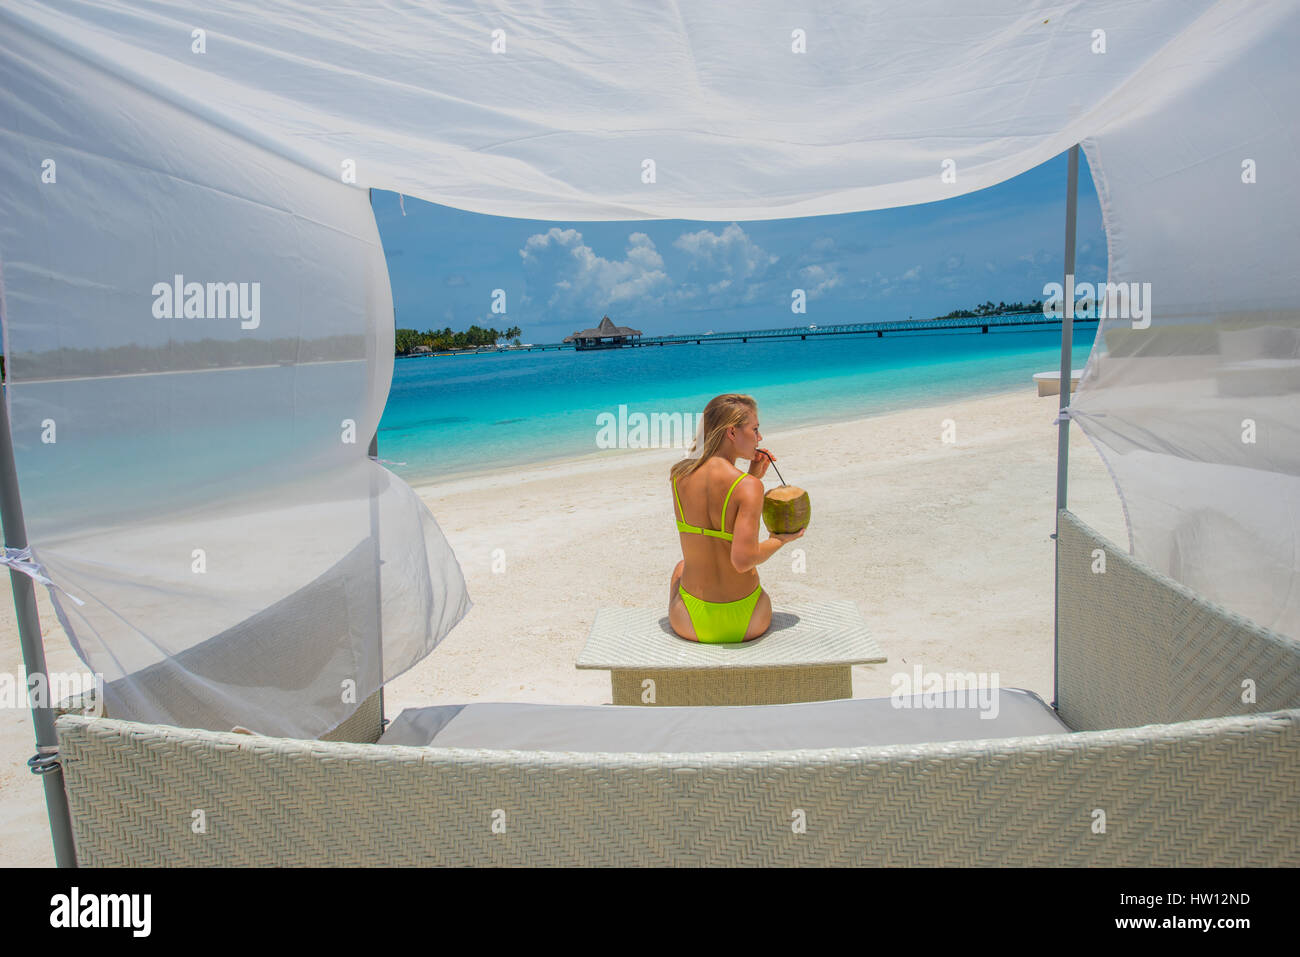 Males Rangali Island. Conrad Hilton Resort. Woman sitting in canopy chair on the beach. (MR & Males Rangali Island. Conrad Hilton Resort. Woman sitting in ...